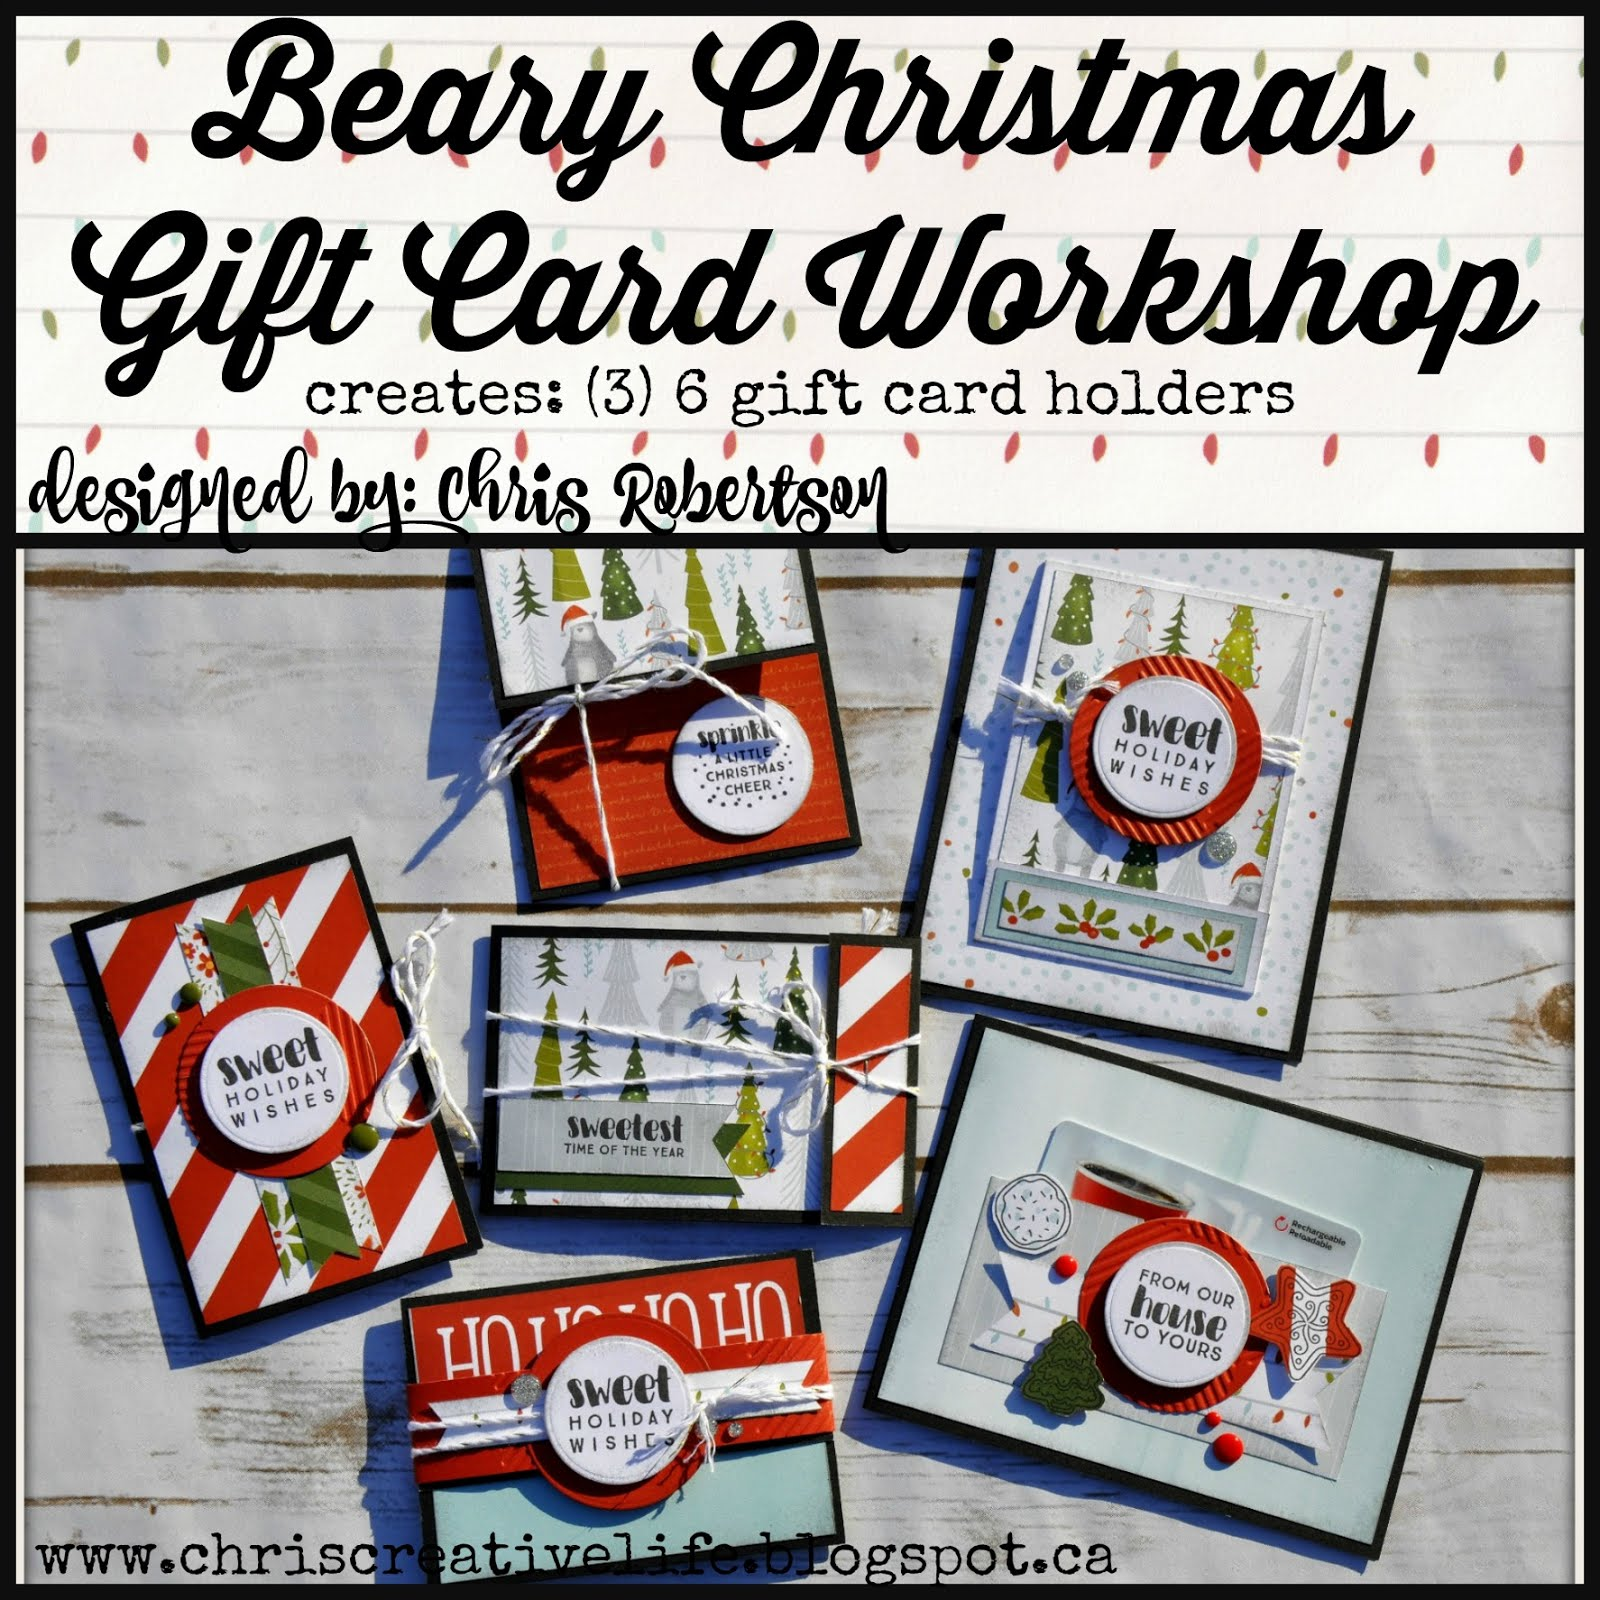 Beary Christmas Gift Card Workshop